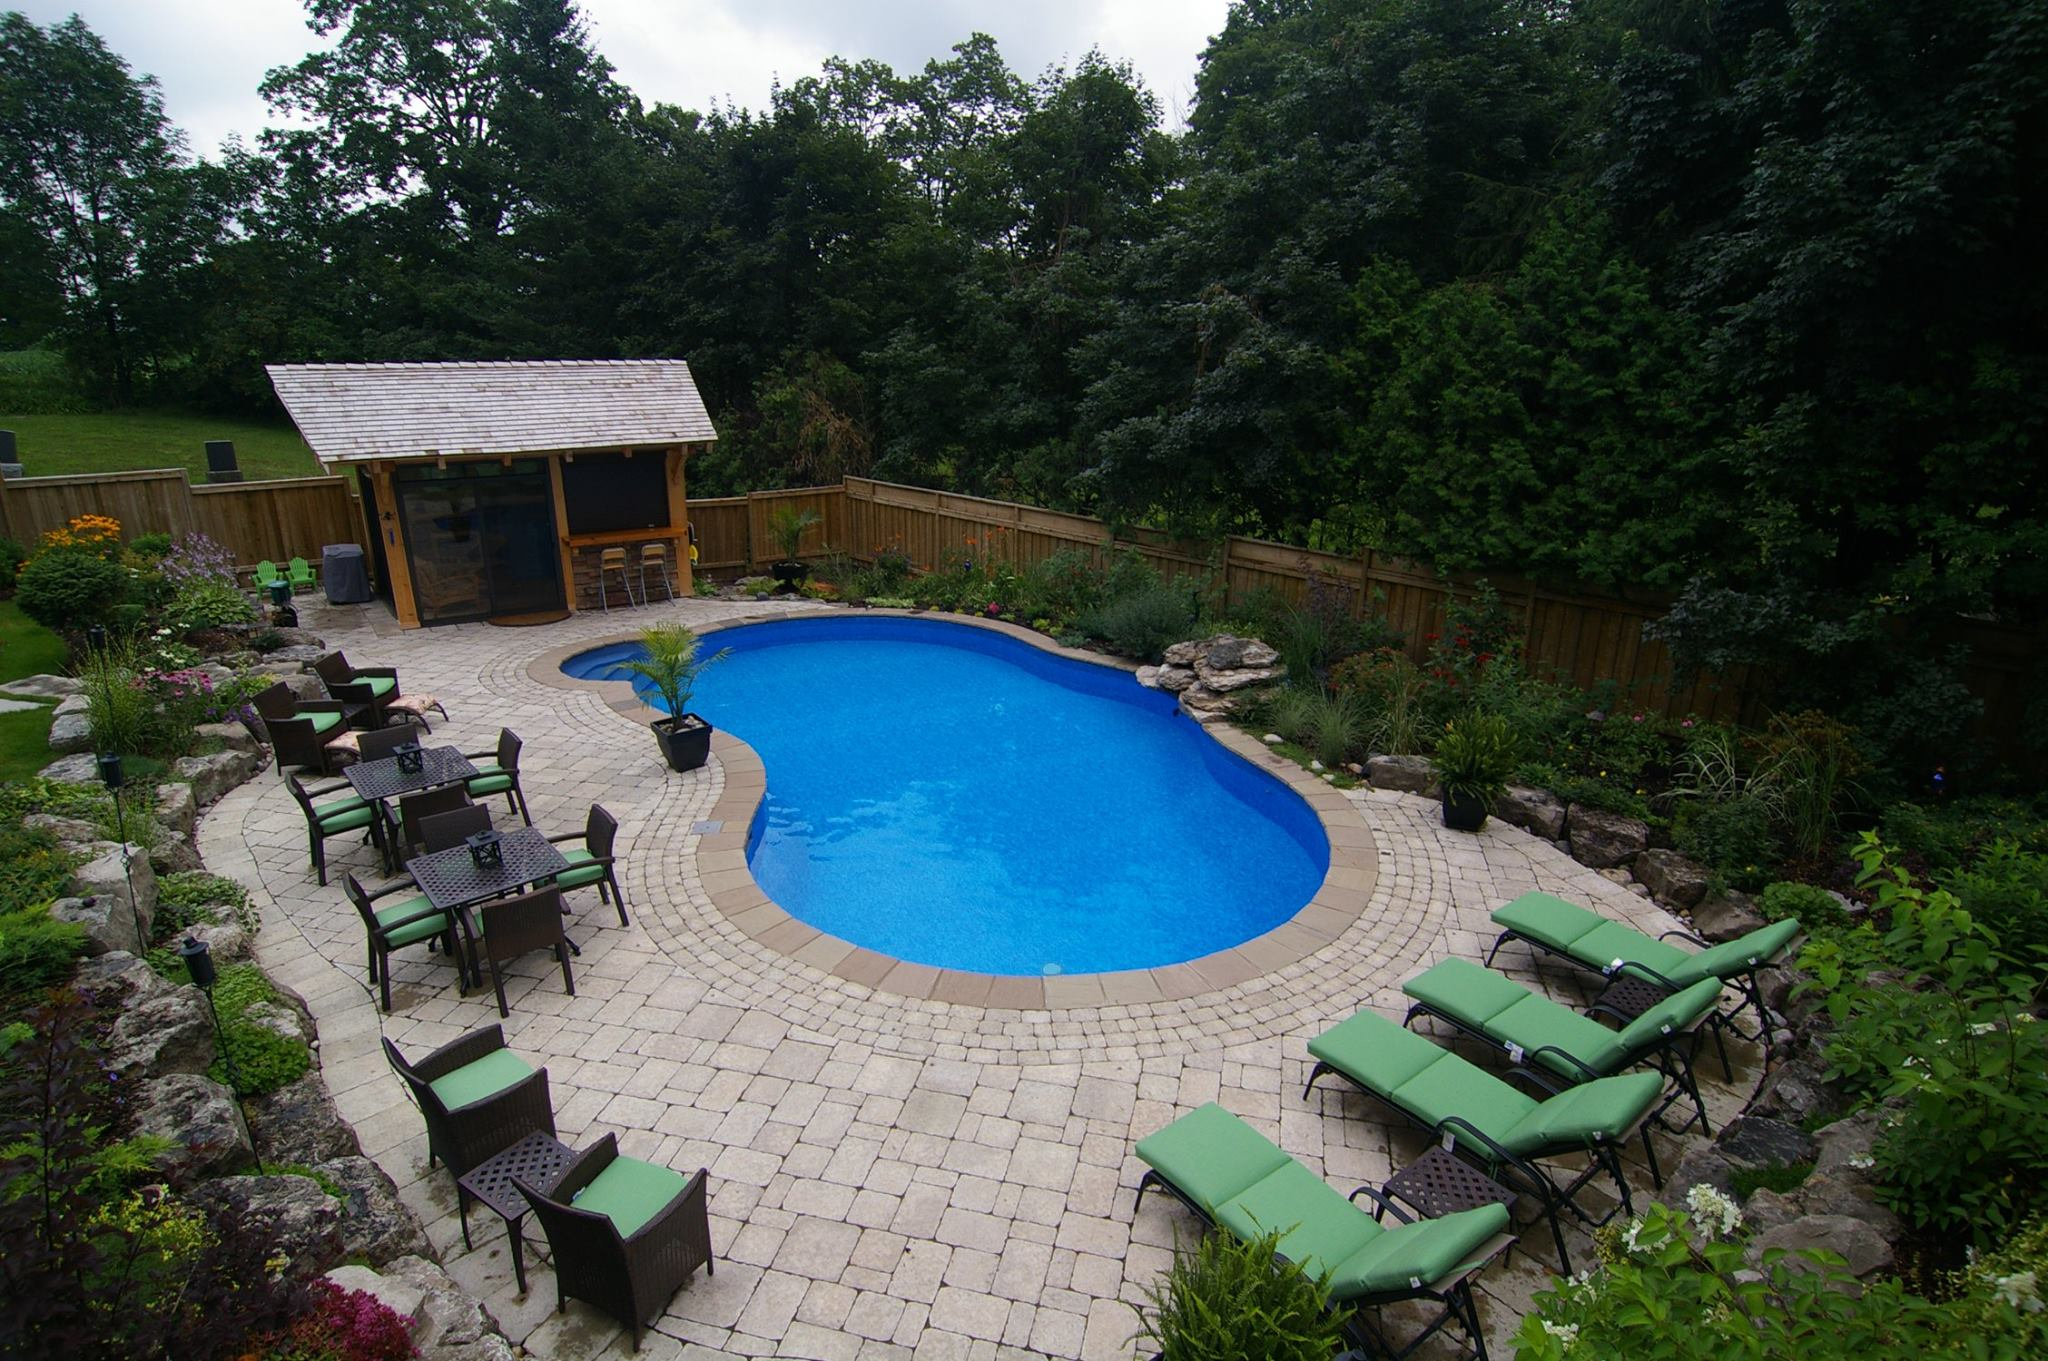 How To Find The Nicest Small In Ground Swimming Pool Design